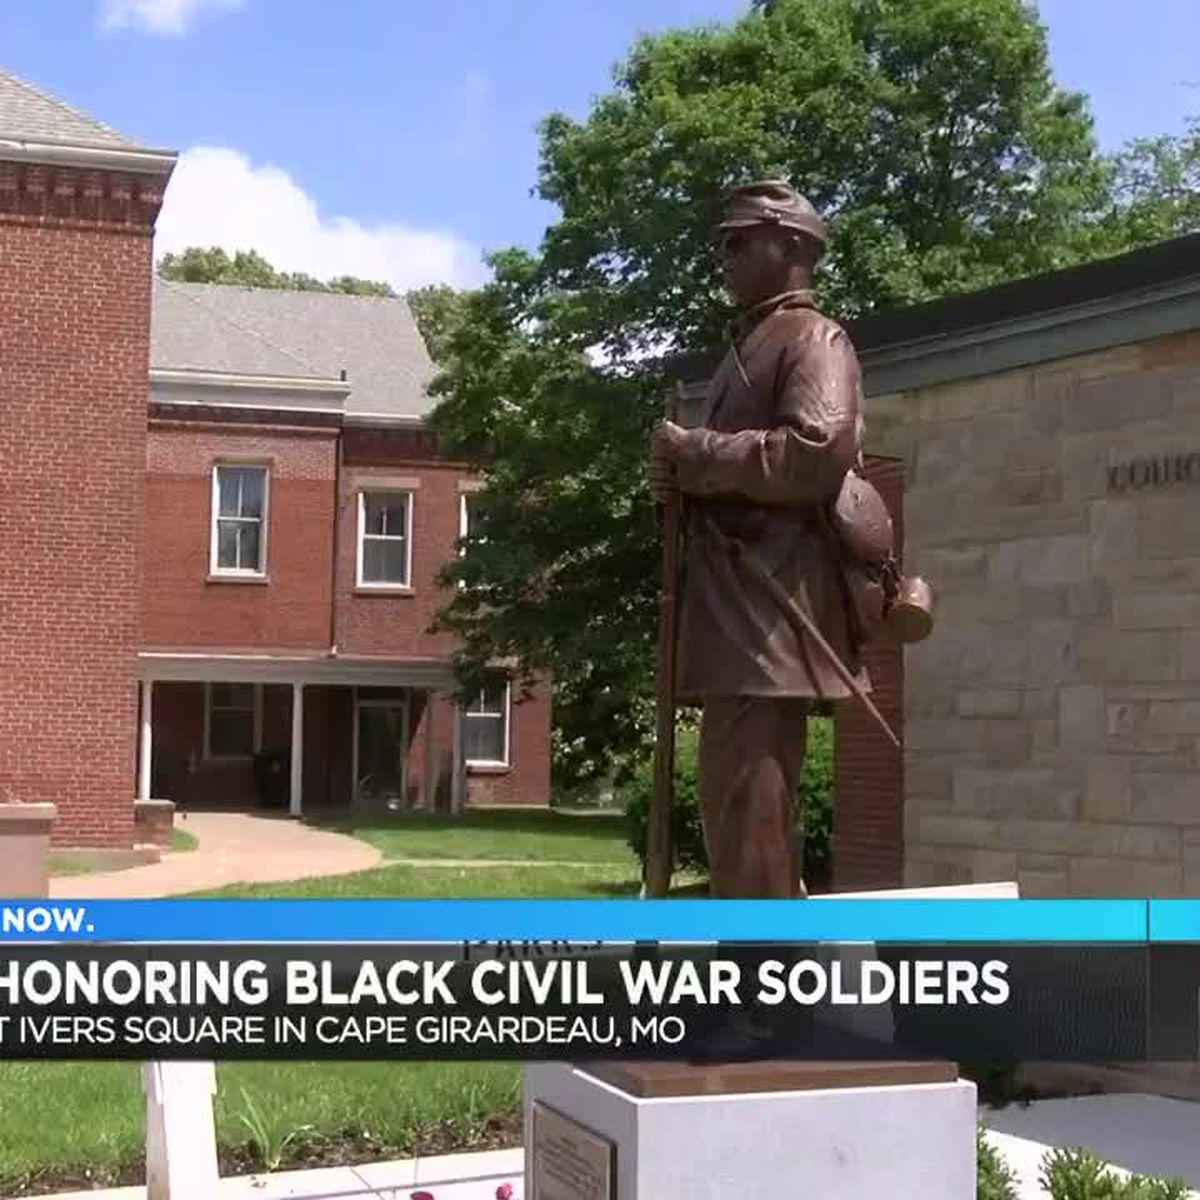 Statue honoring black Civil War soldiers installed in Cape Girardeau